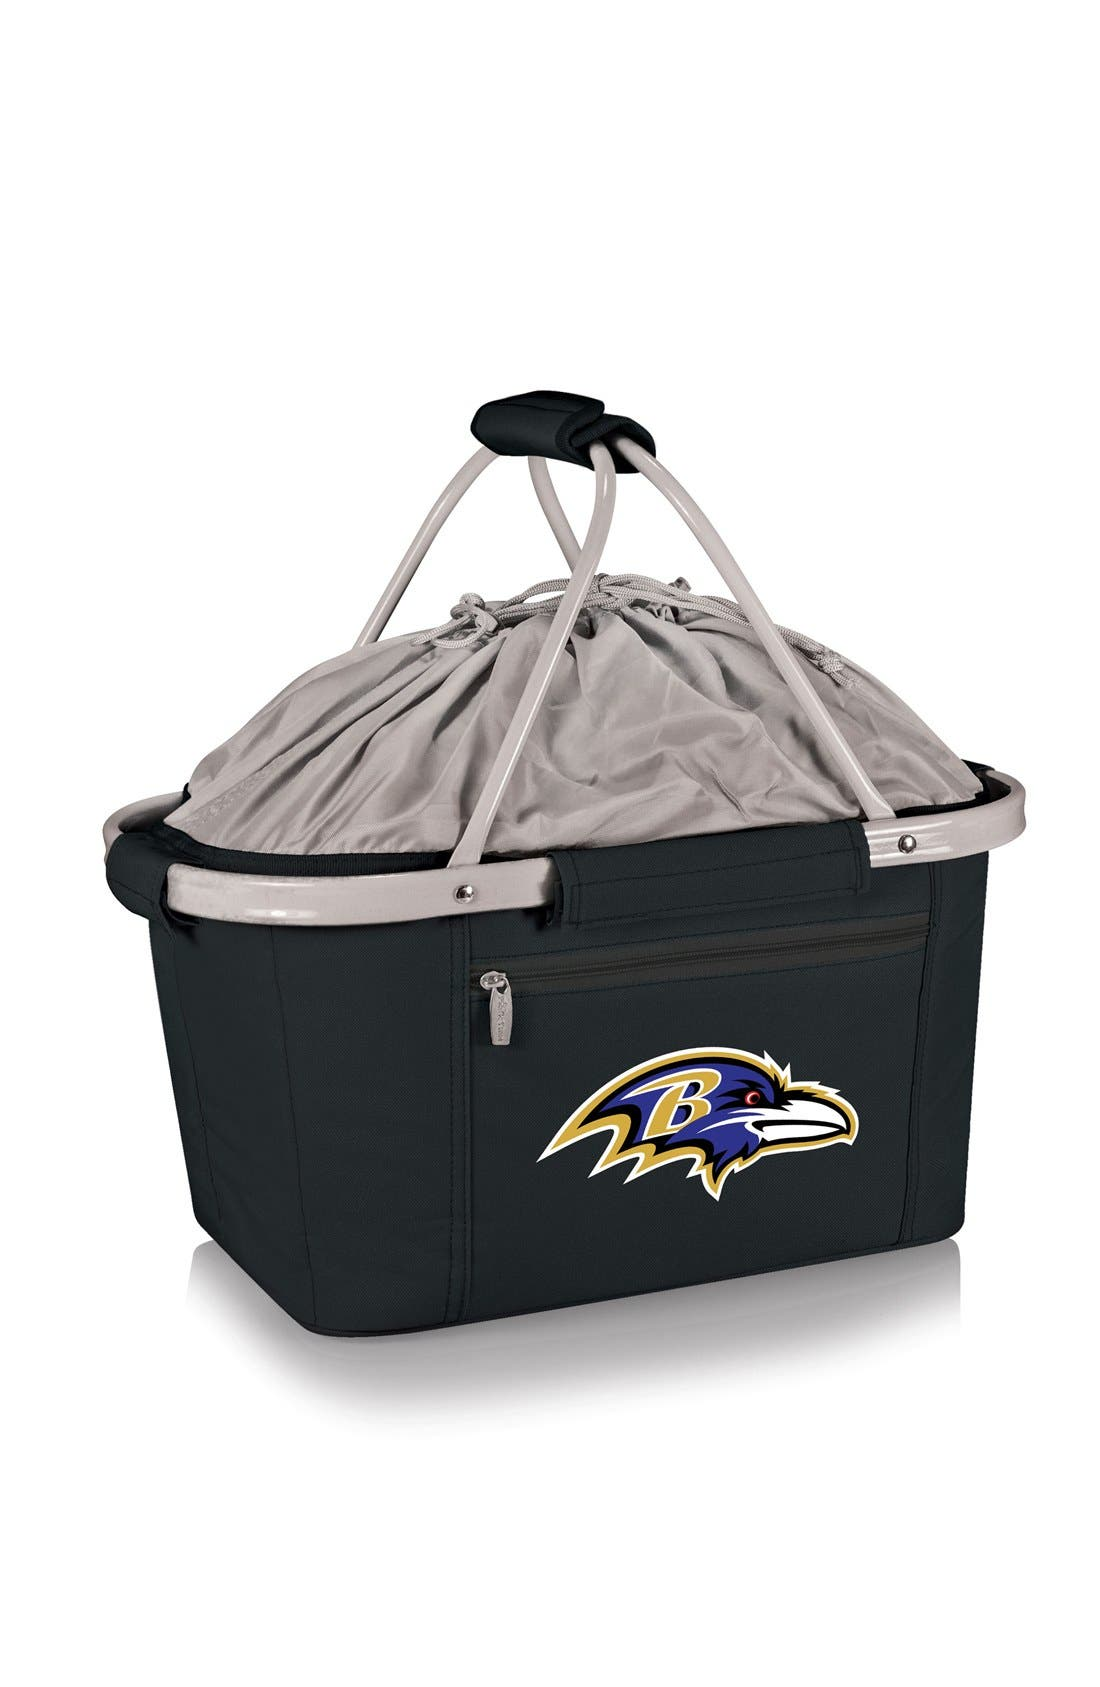 Metro NFL Collapsible Insulated Basket,                             Main thumbnail 1, color,                             Baltimore Ravens/ Black